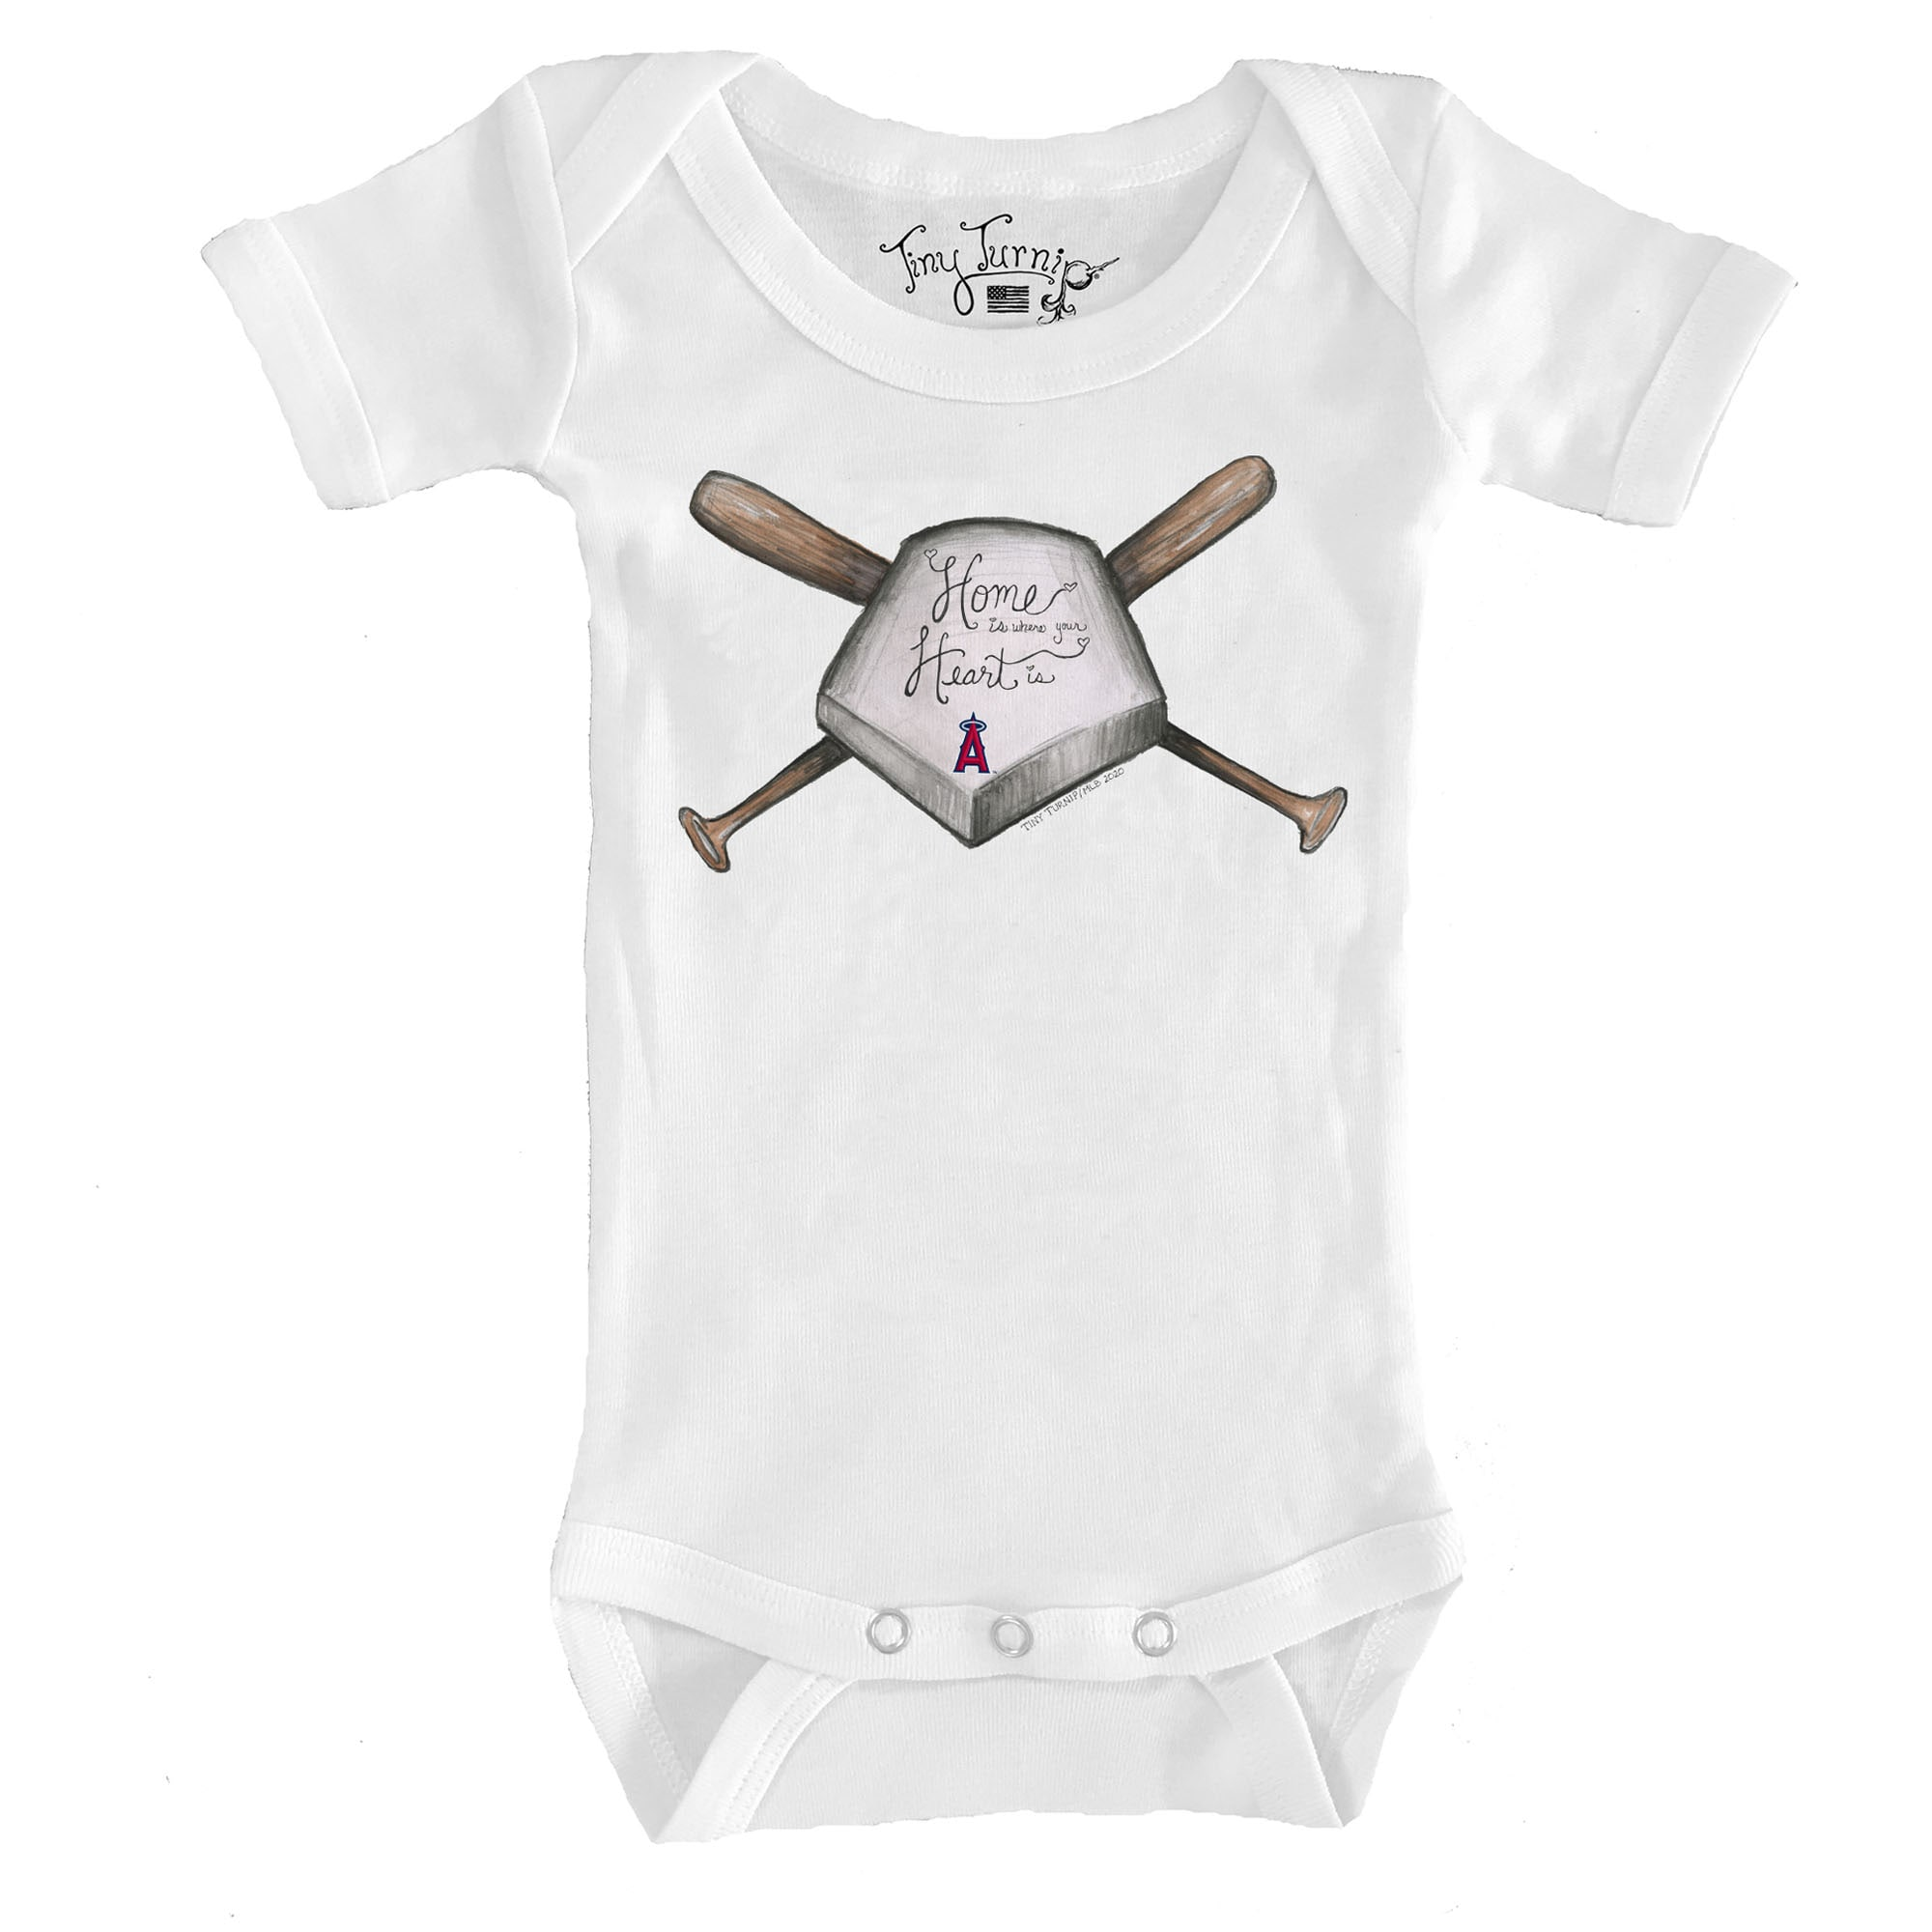 Los Angeles Angels Tiny Turnip Infant Home Is Where Your Heart Is Bodysuit - White